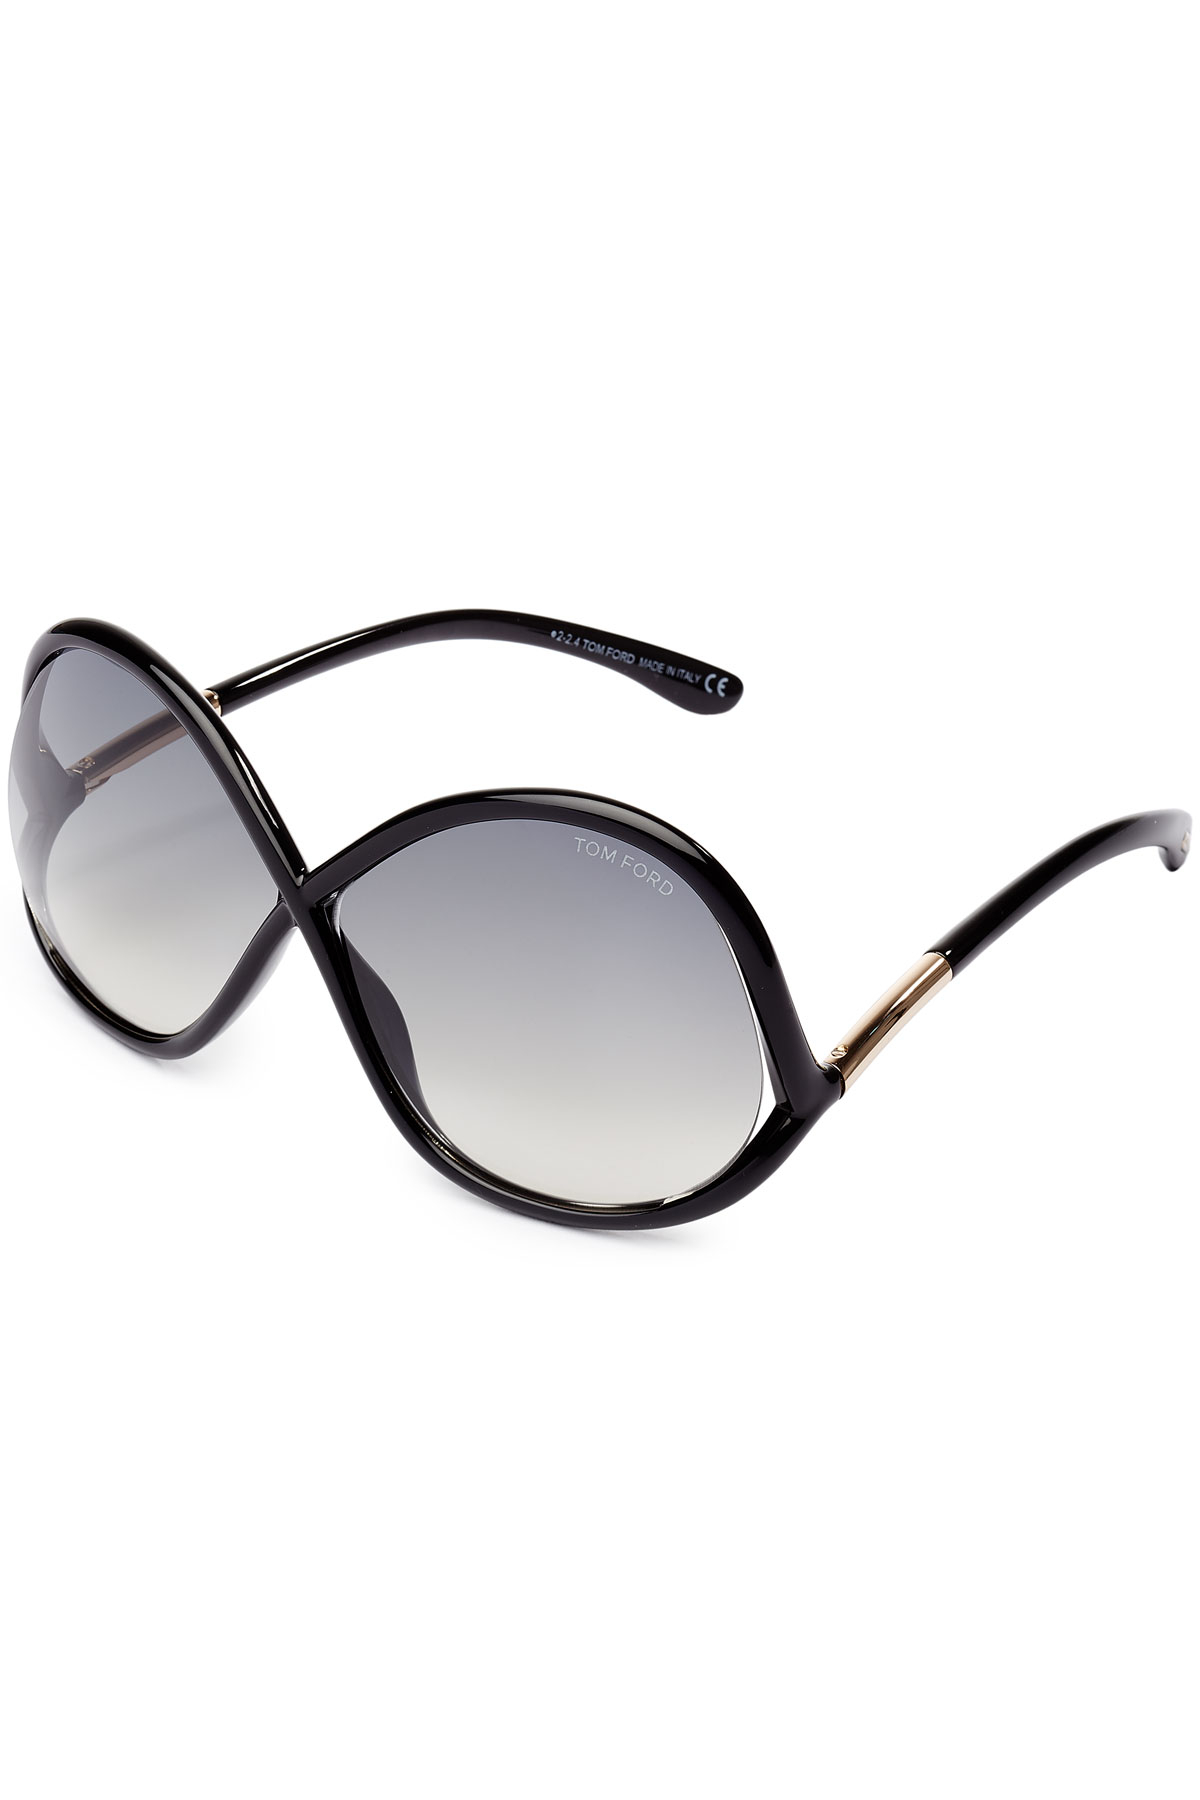 64479a3dc42 Tom Ford Oversized Wrap Sunglasses - Black in Black - Lyst